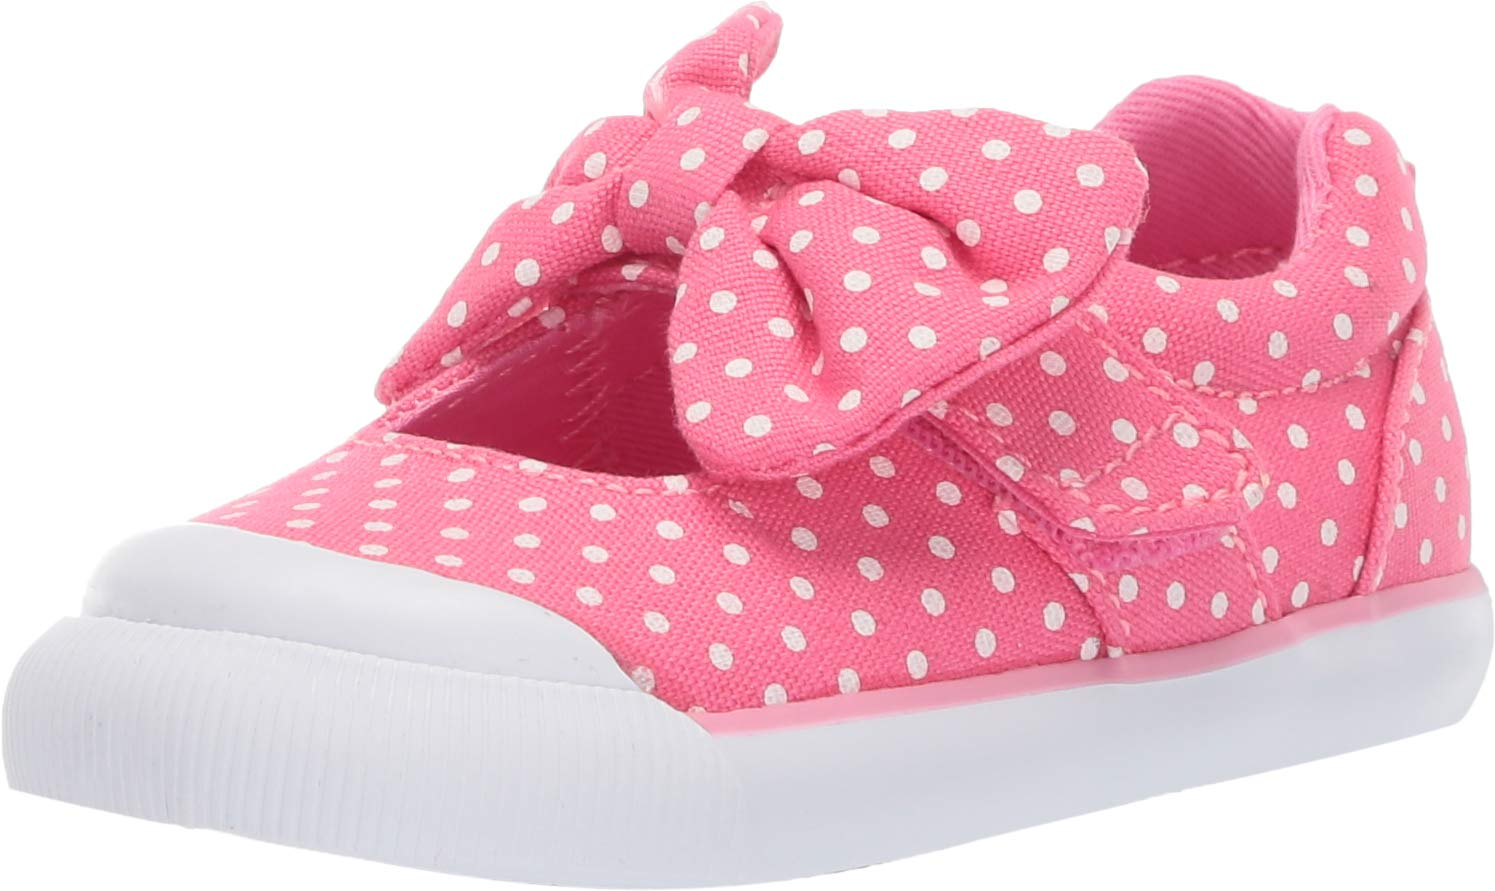 Stride Rite Rosalie Girl's Casual Sneaker, Pink, 7 M US Toddler by Stride Rite